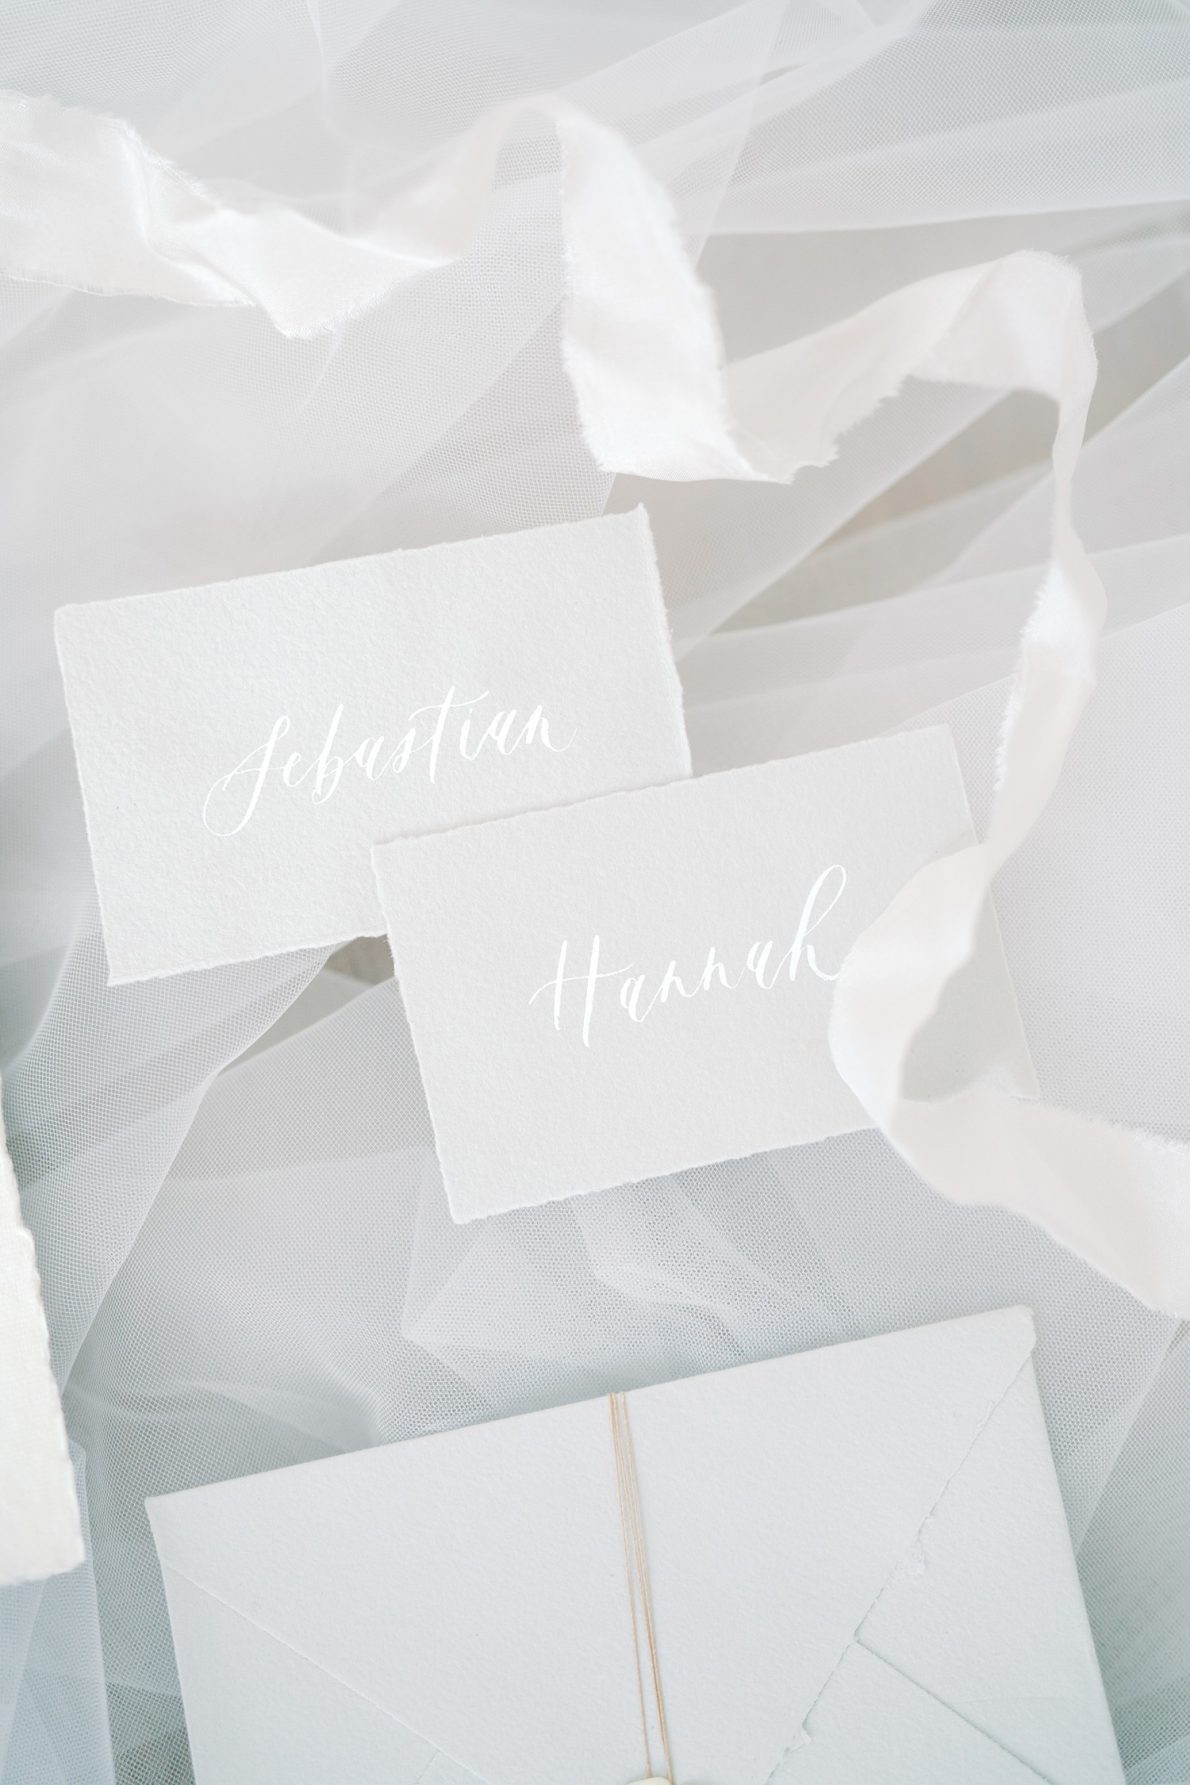 Grey_Invitations_Calligraphy-Wedding-Stationary-Ivory_and_Twine-Rhythm_Photography